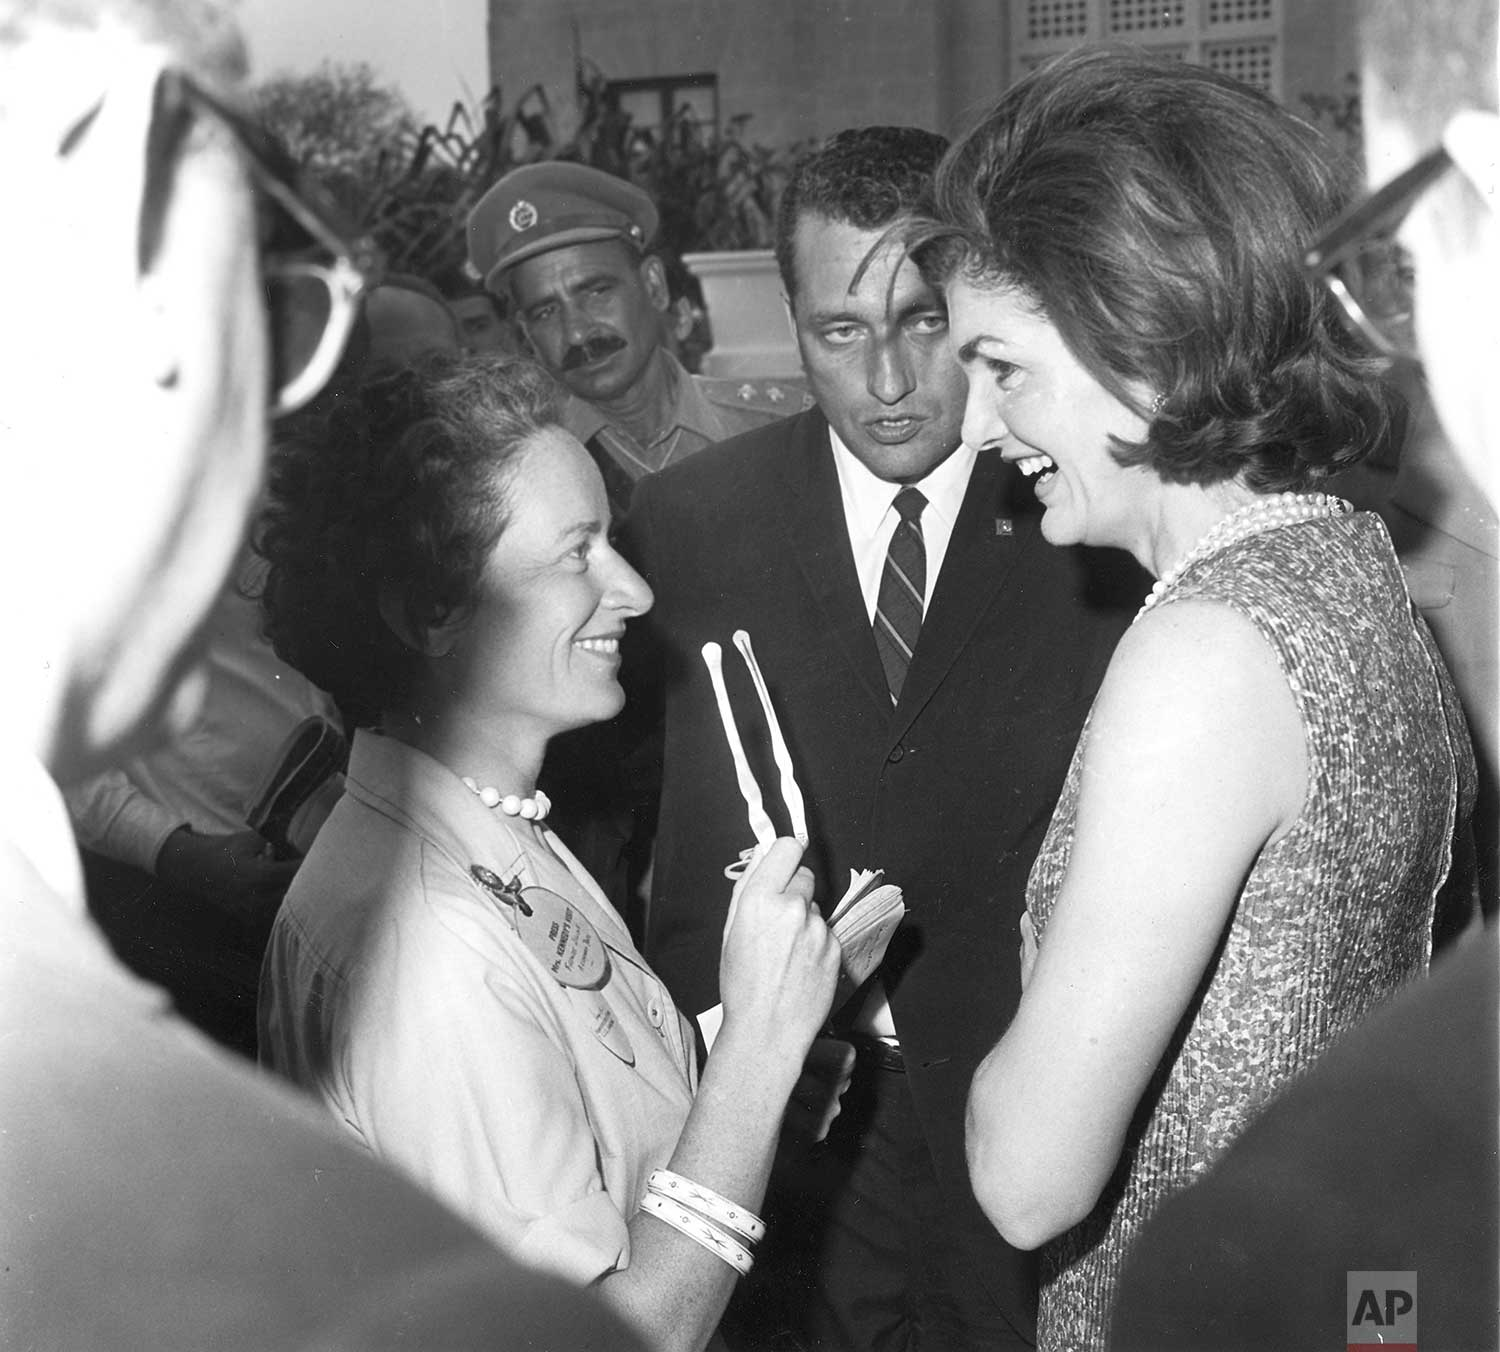 Frances Lewine, left, of The Associated Press talks with Mrs. Jaqueline Kennedy on the lawn of the Governor's residence at Karachi, Pakistan, after the First Lady had dismounted from a camel ride. Miss Lewine was a member of the press contingent that covered Mrs. Kennedy's world tour in March 1962. (AP Photo/Corporate Archives)